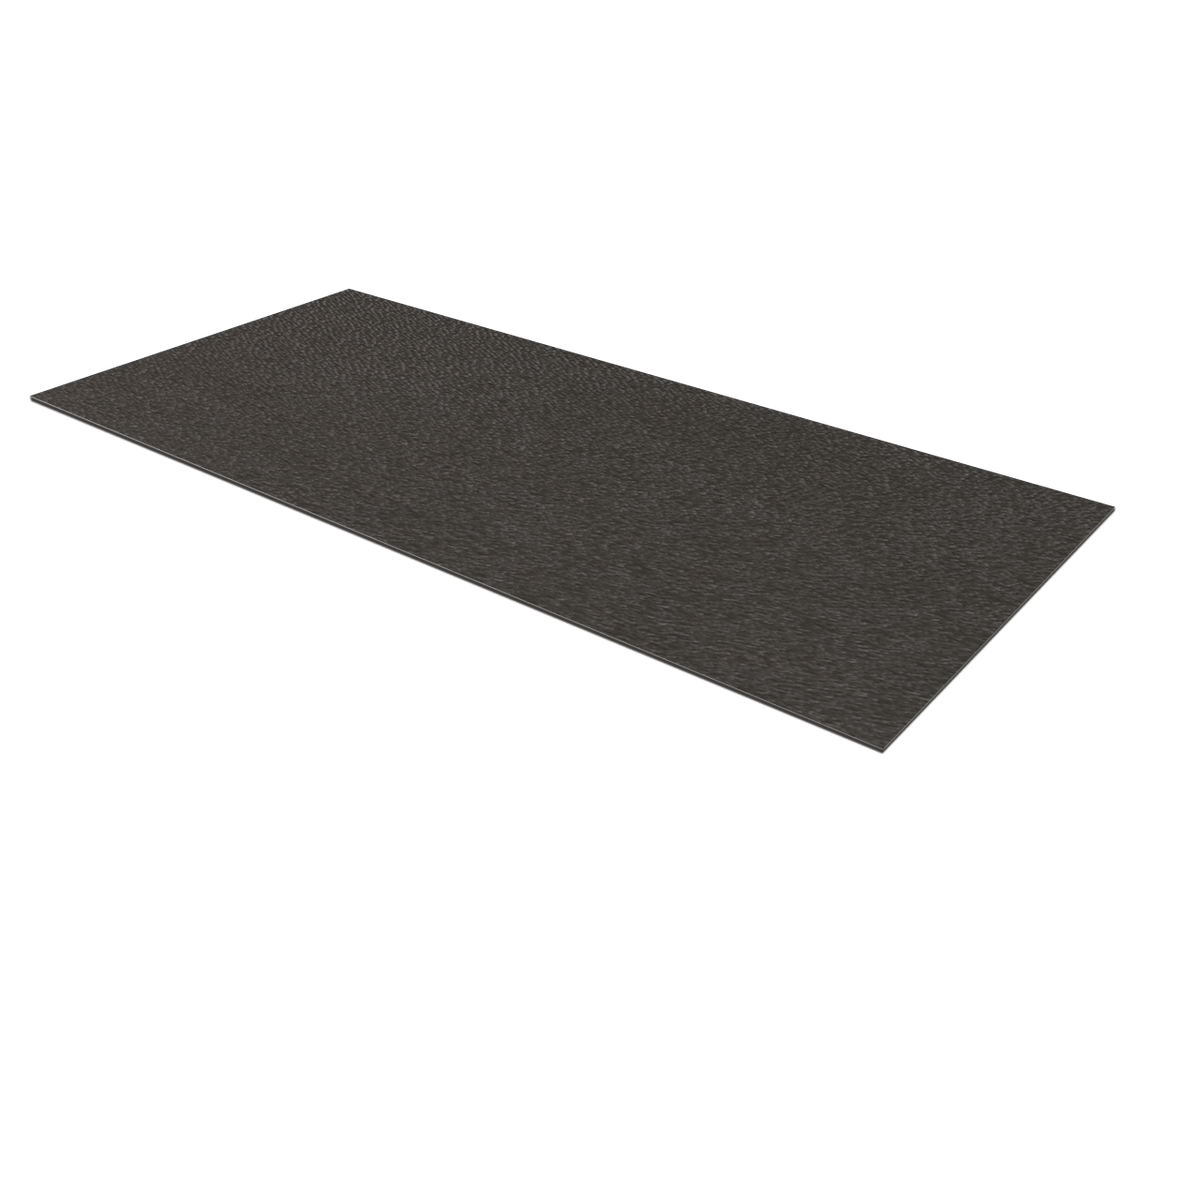 ABS Plastic Sheet - Gray